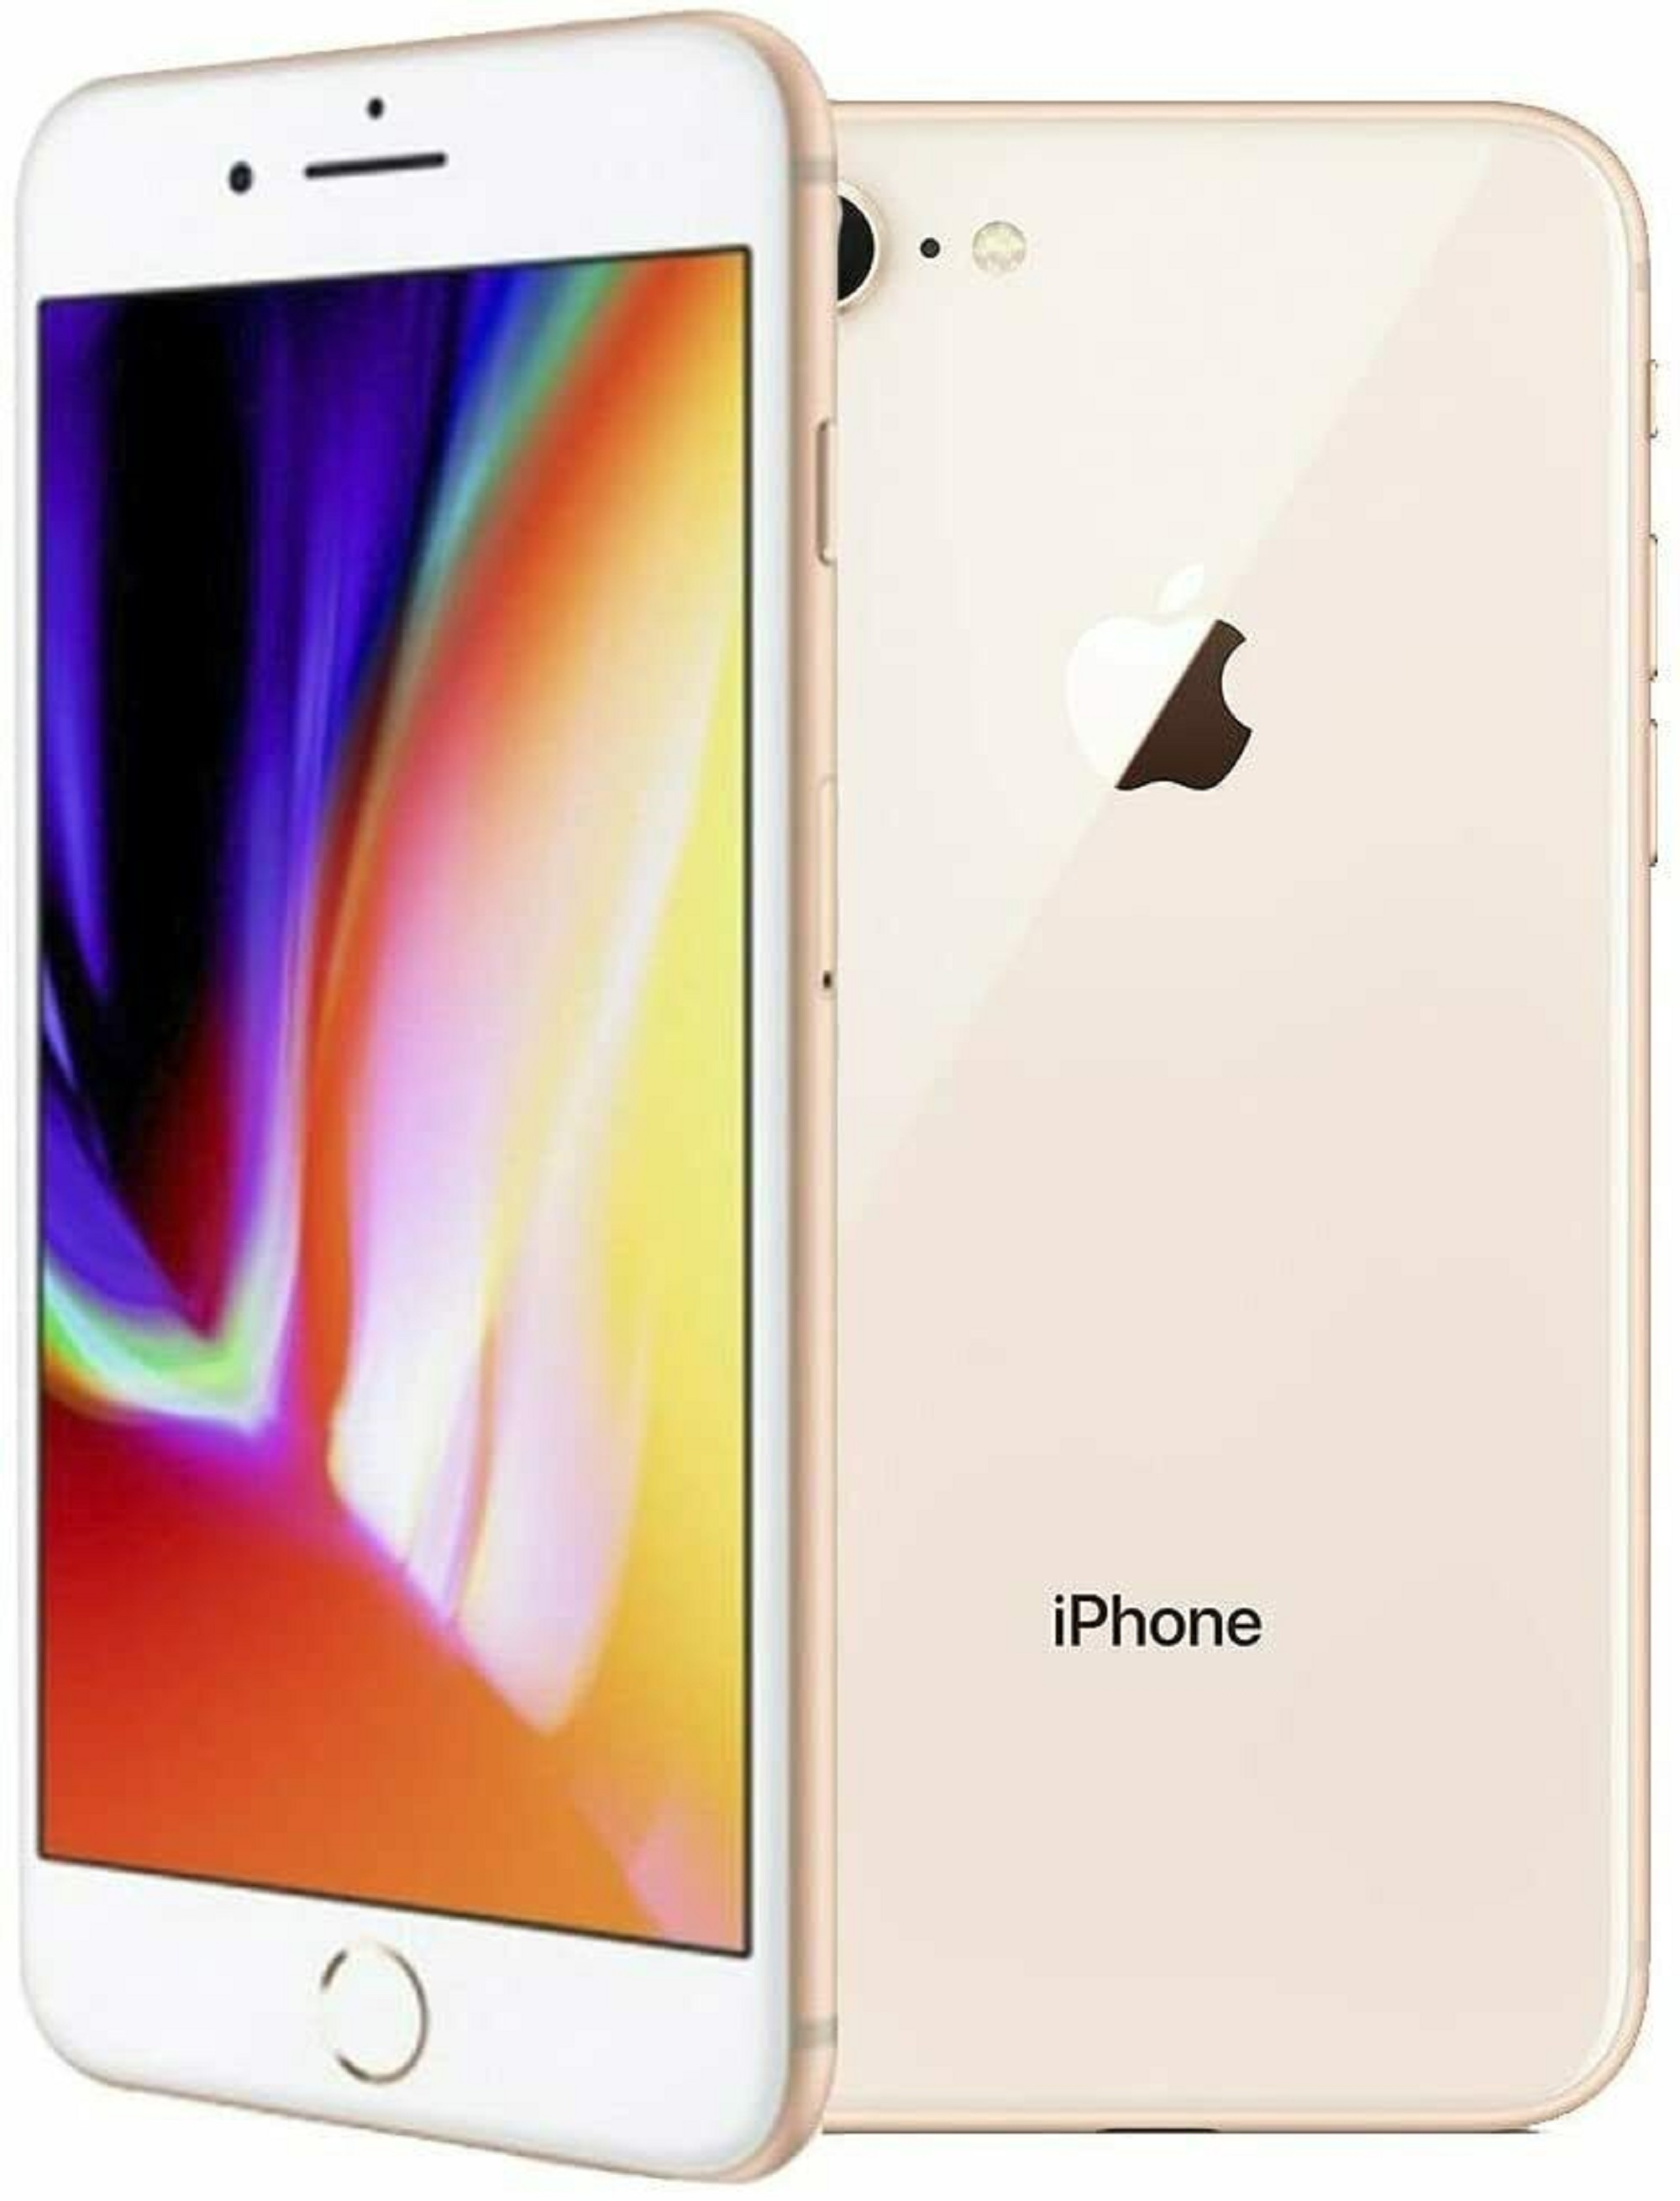 thumbnail 4 - Apple iPhone 8 64GB Factory Unlocked Smartphone